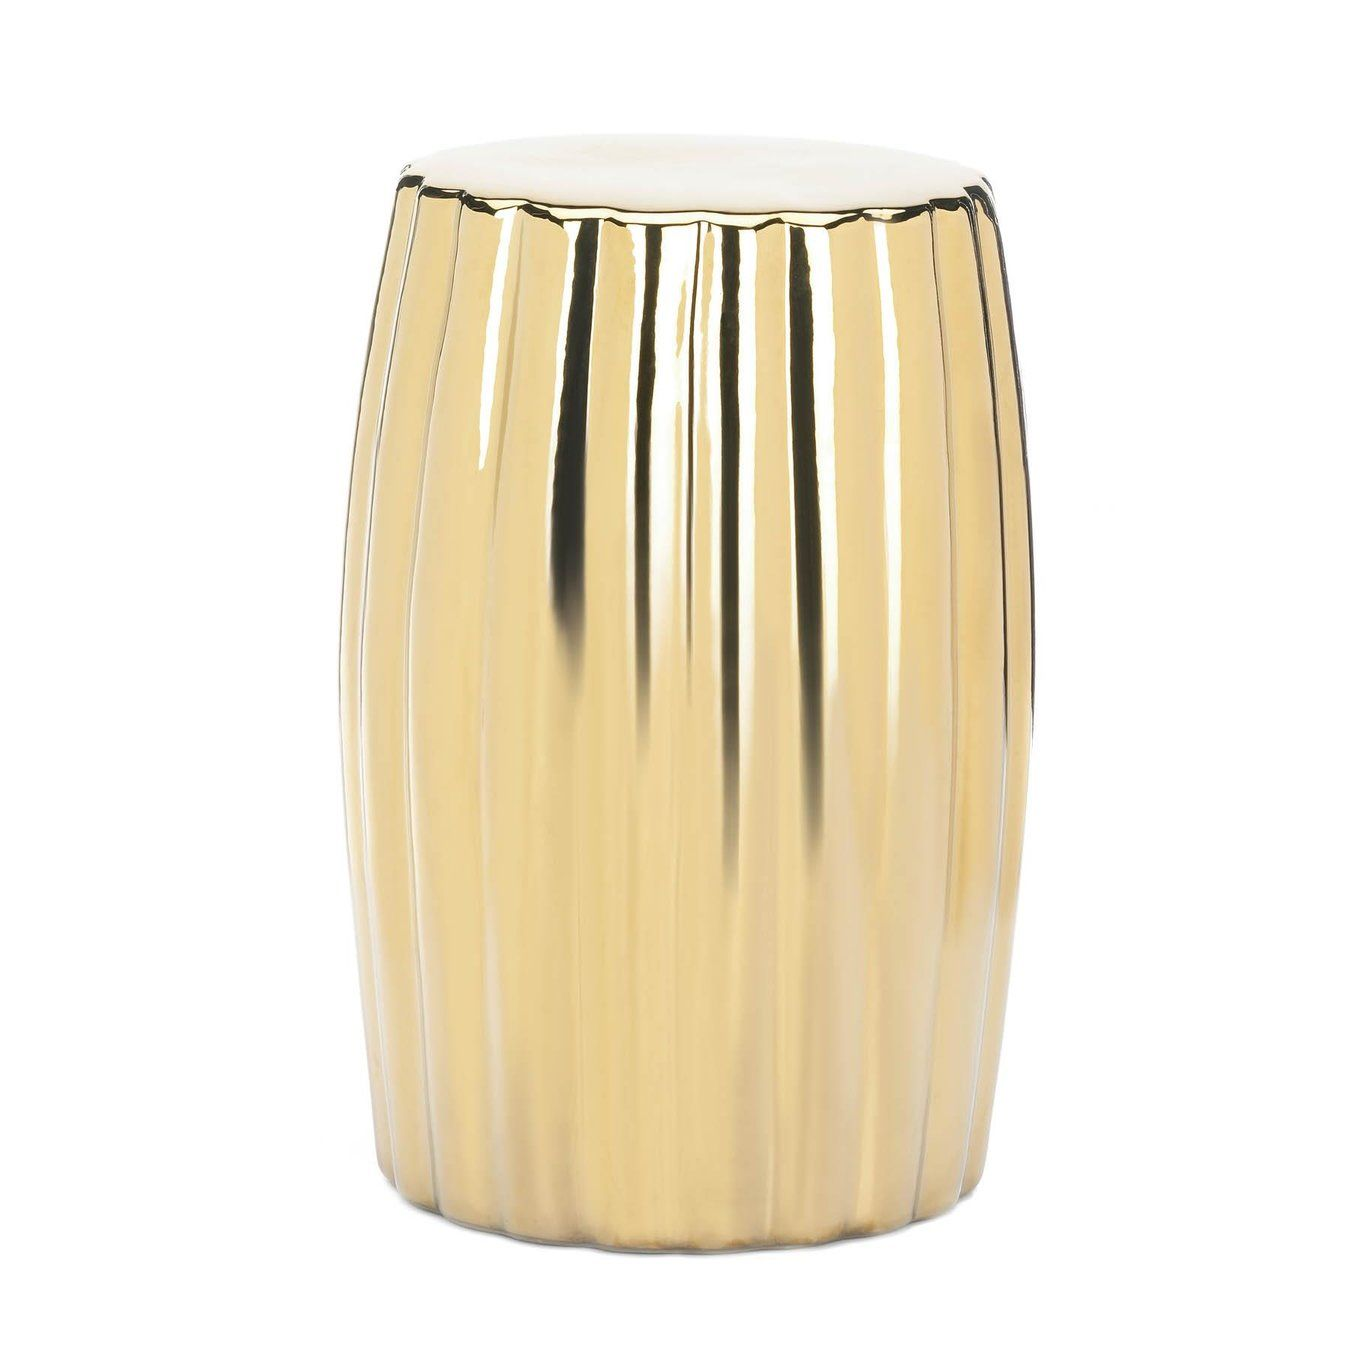 Gold Decorative Stool  - Add a hint of shine to your decor with this gold decorative stool. Made from durable ceramic material, this gold stool can be displayed on its own or used as a modern plant stand. The sleek gold finish and smooth surface will add a bold contemporary look to your living room, office or bedroom space.